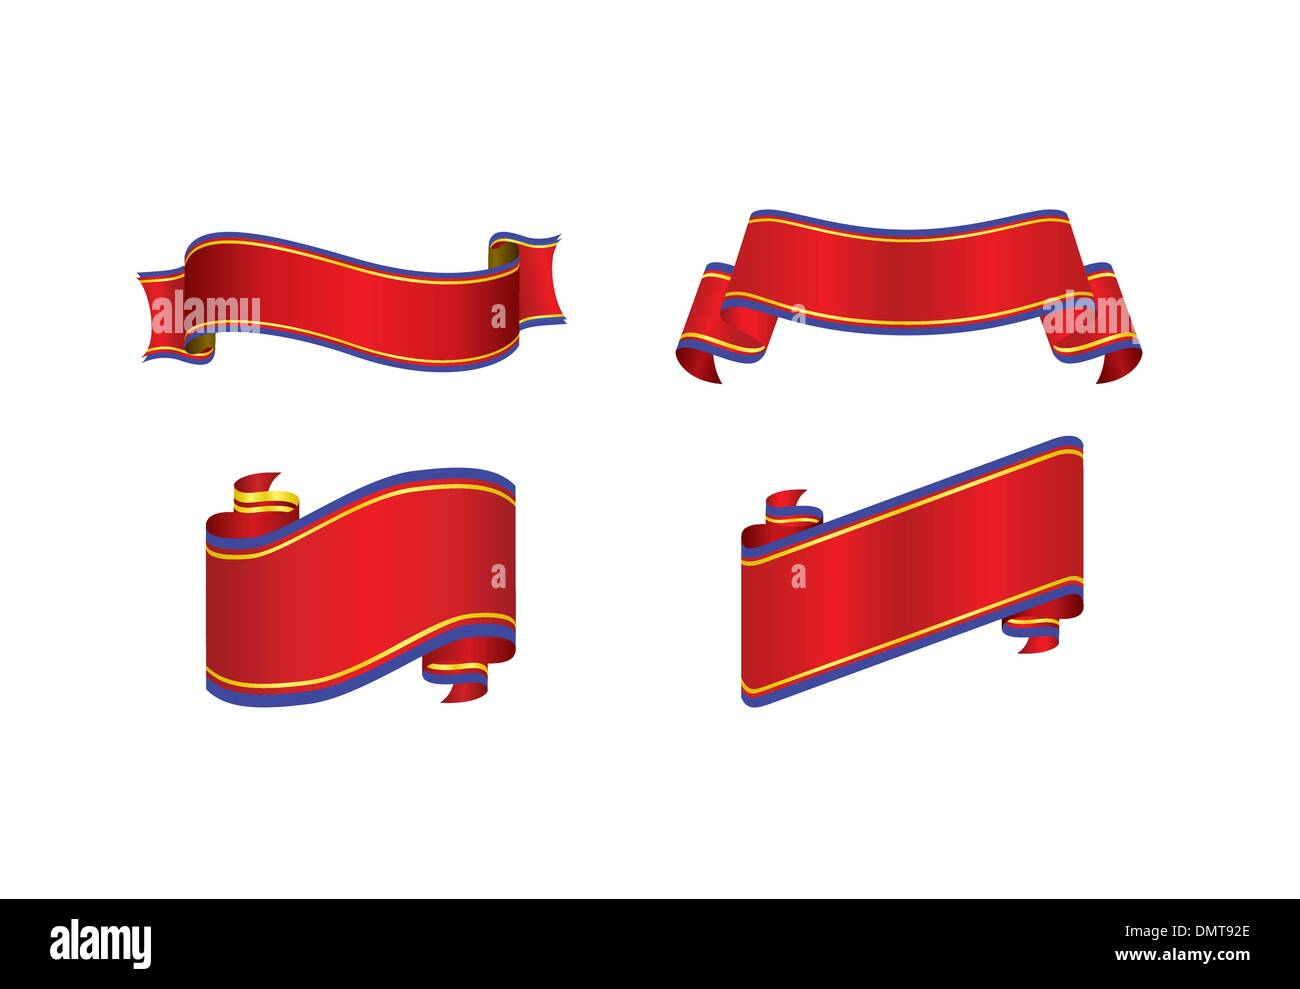 vector banners (click image to zoom) - Stock Image